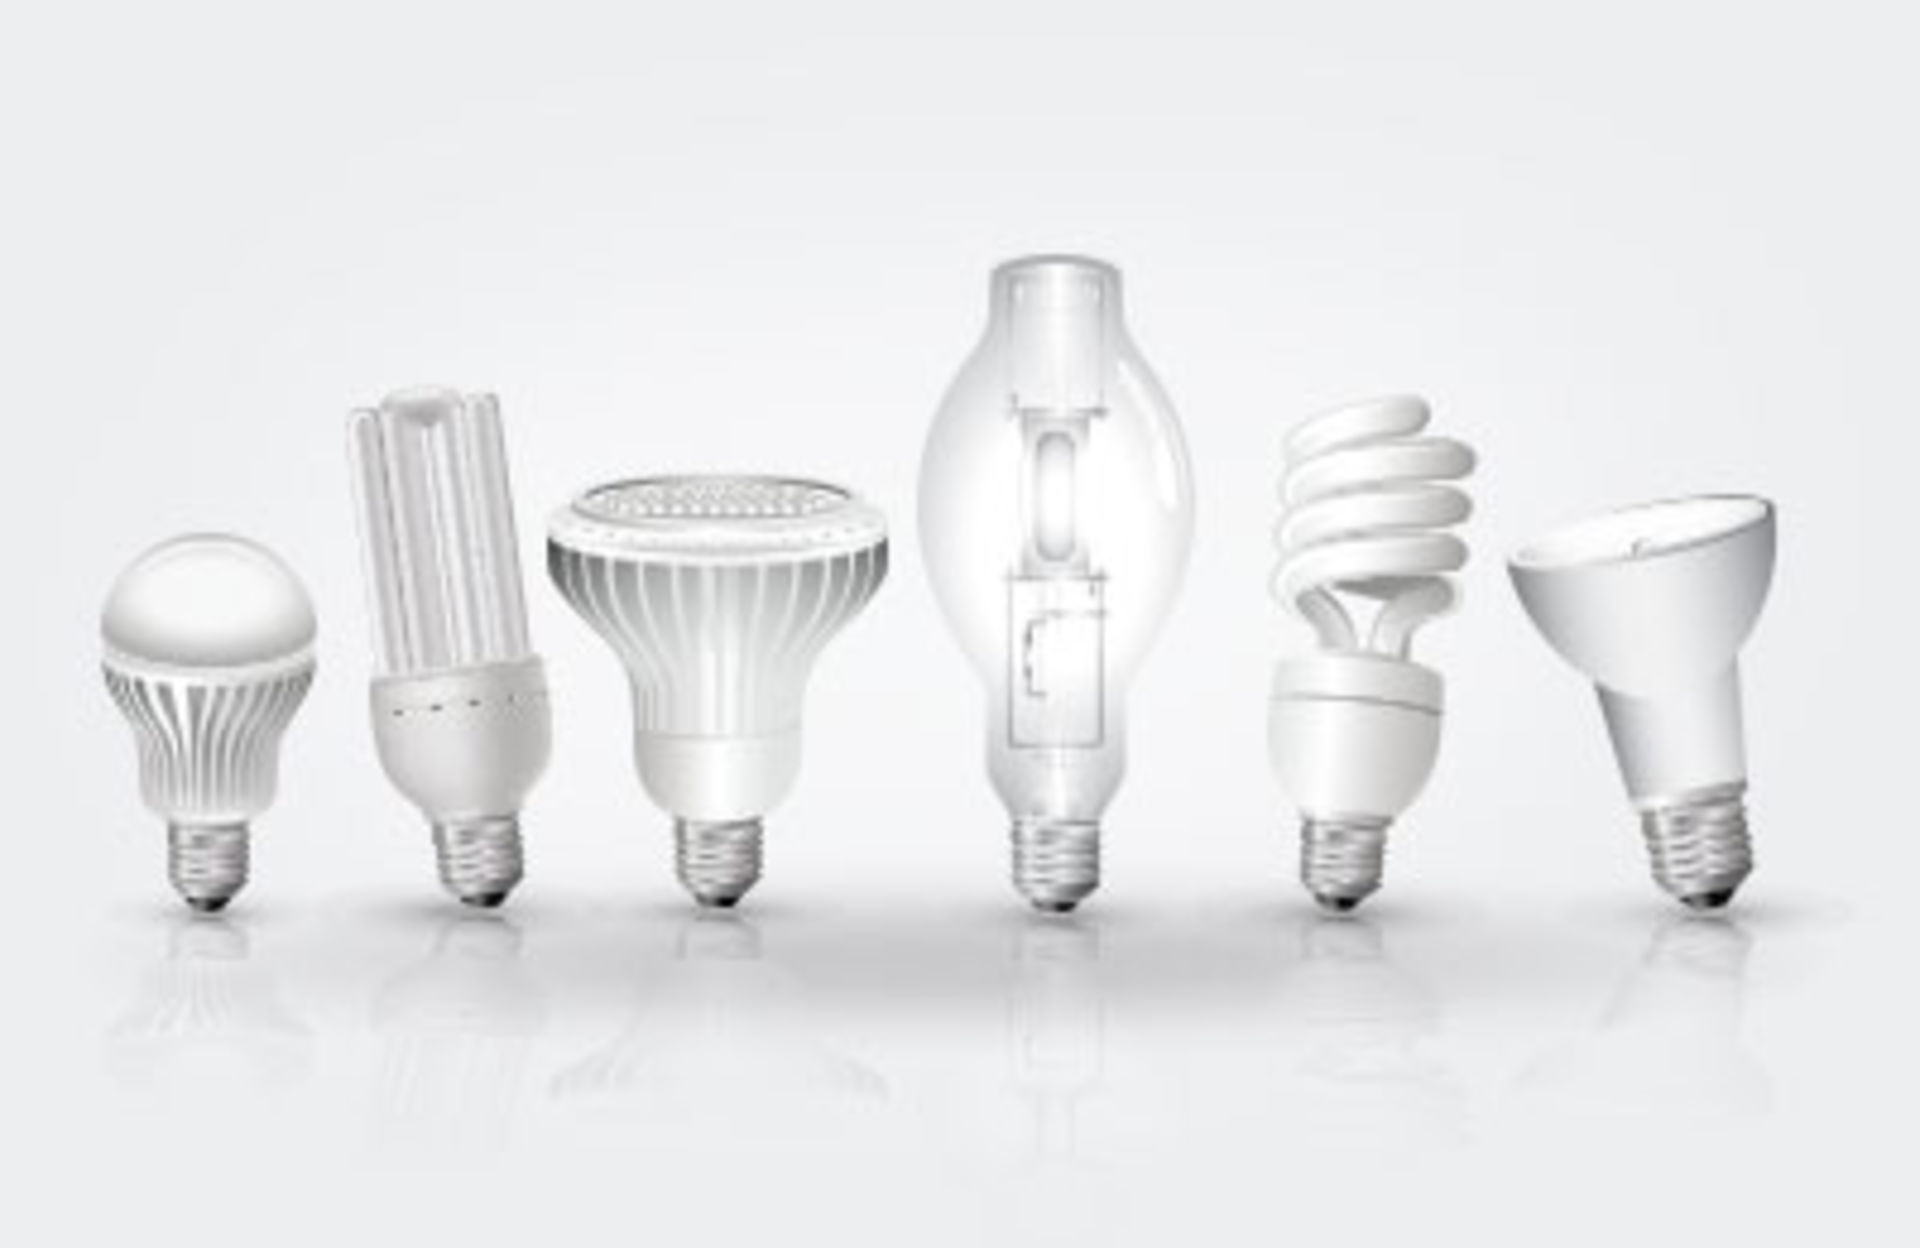 Are You Using The Right Light Bulbs?